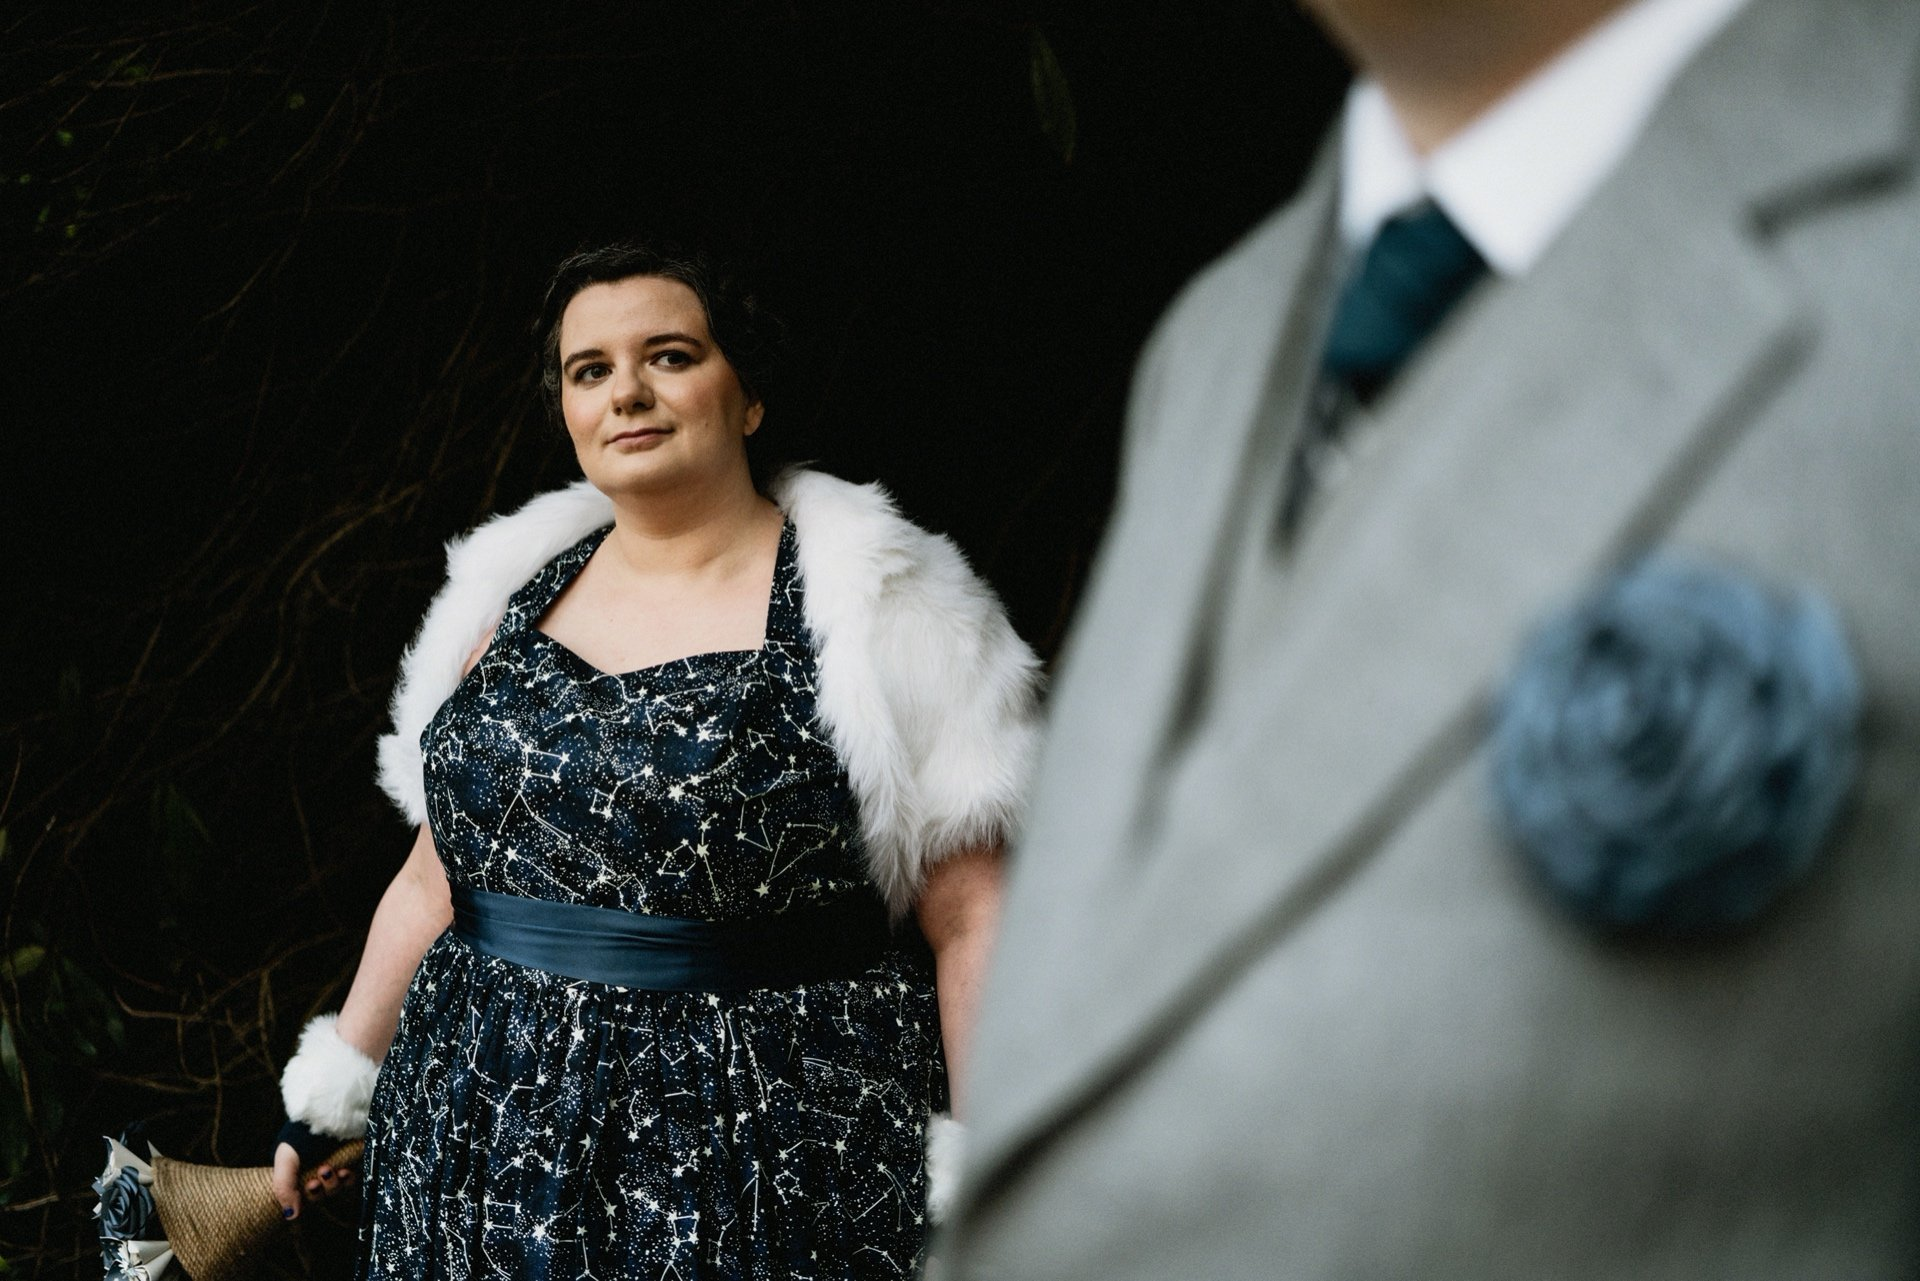 Bride wearing dark blue star print wedding dress and fur shrug looks over to groom